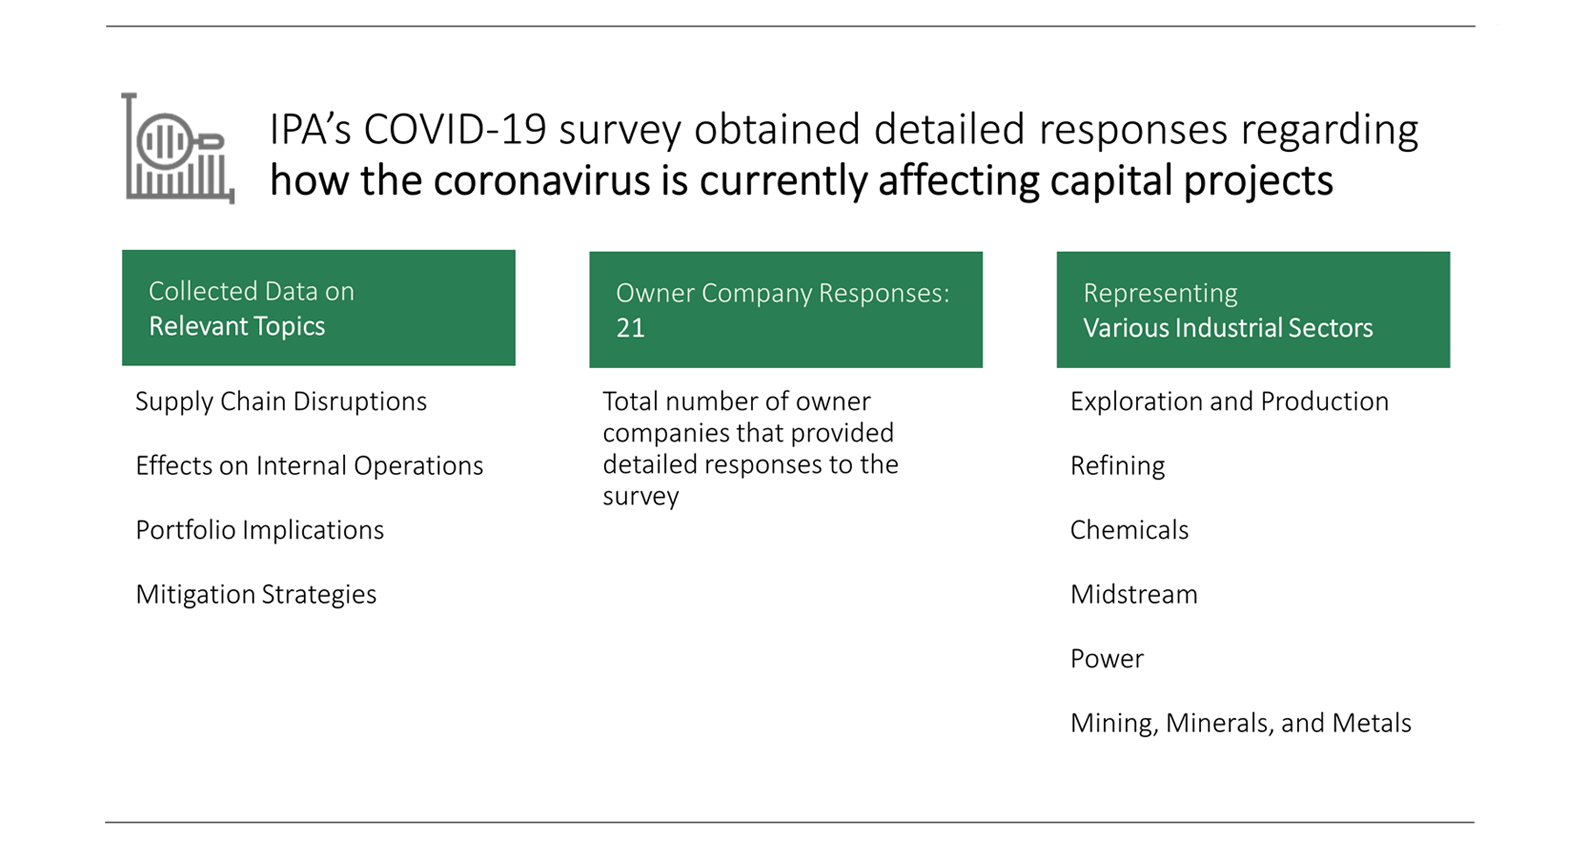 IPA's COVID-19 survey obtained detailed responses regarding how the coronavirus is currently affecting capital projects.